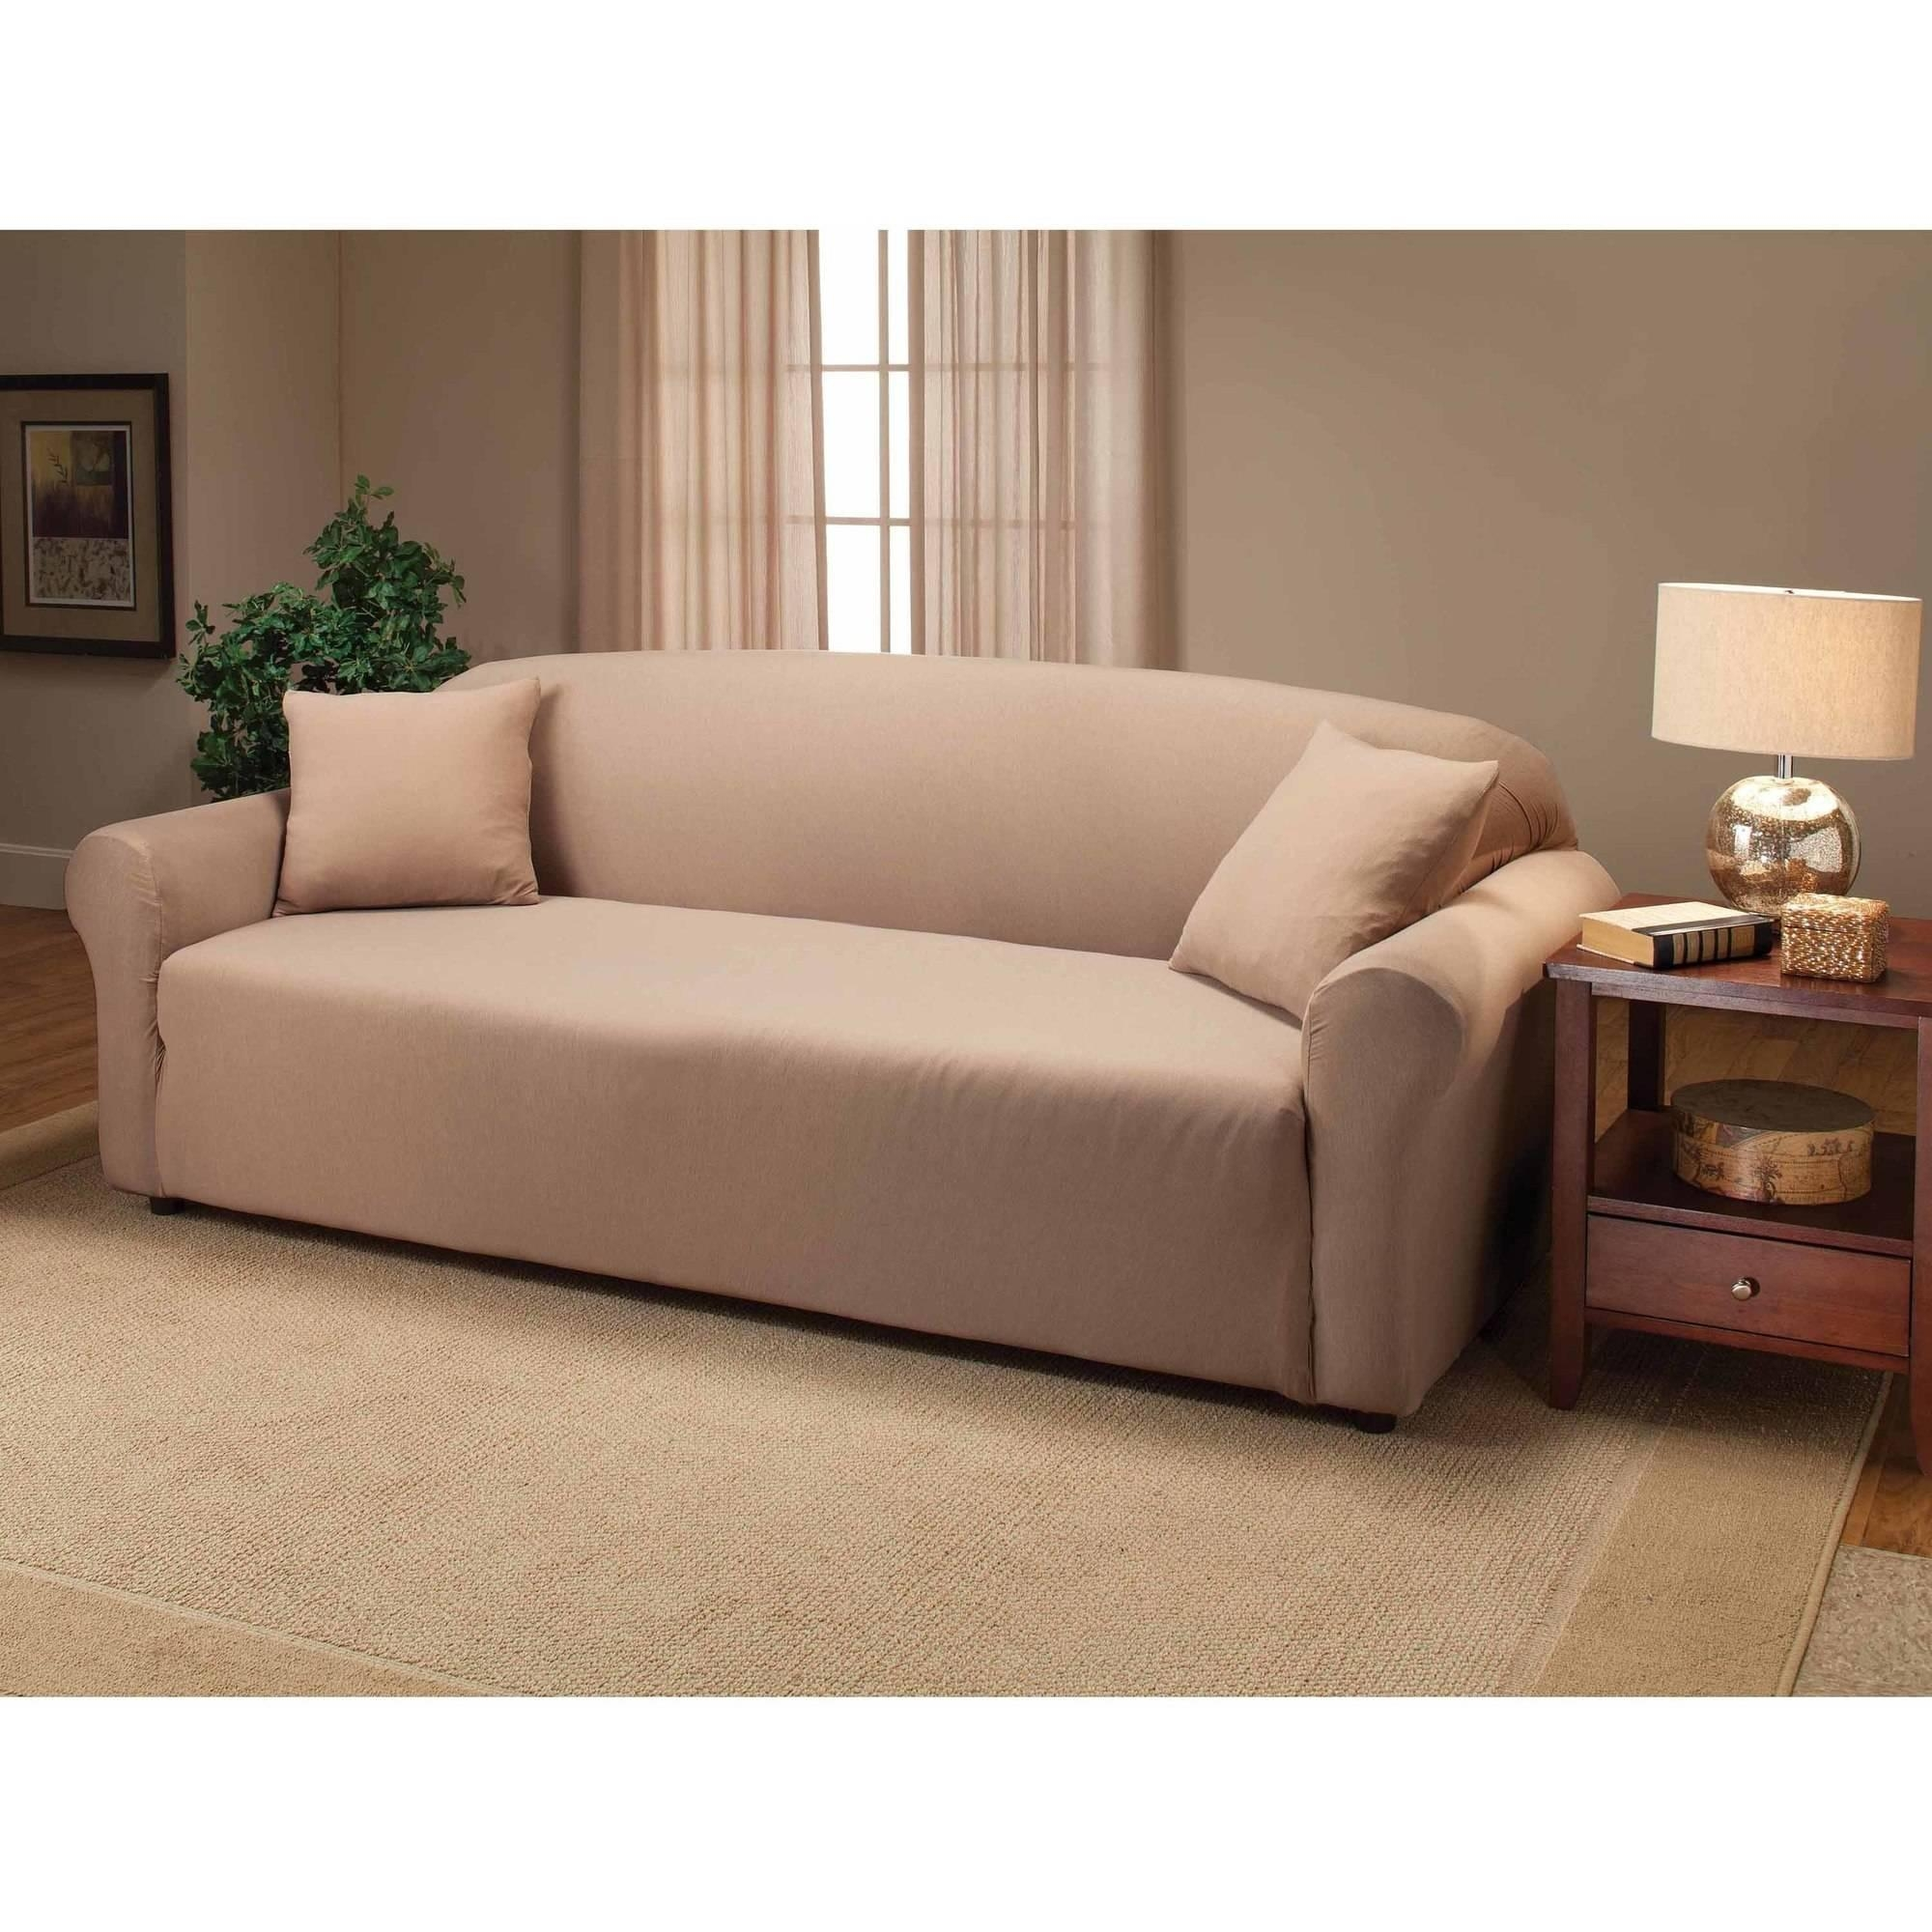 20 collection of slipcover for recliner sofas sofa ideas for Furniture at walmart